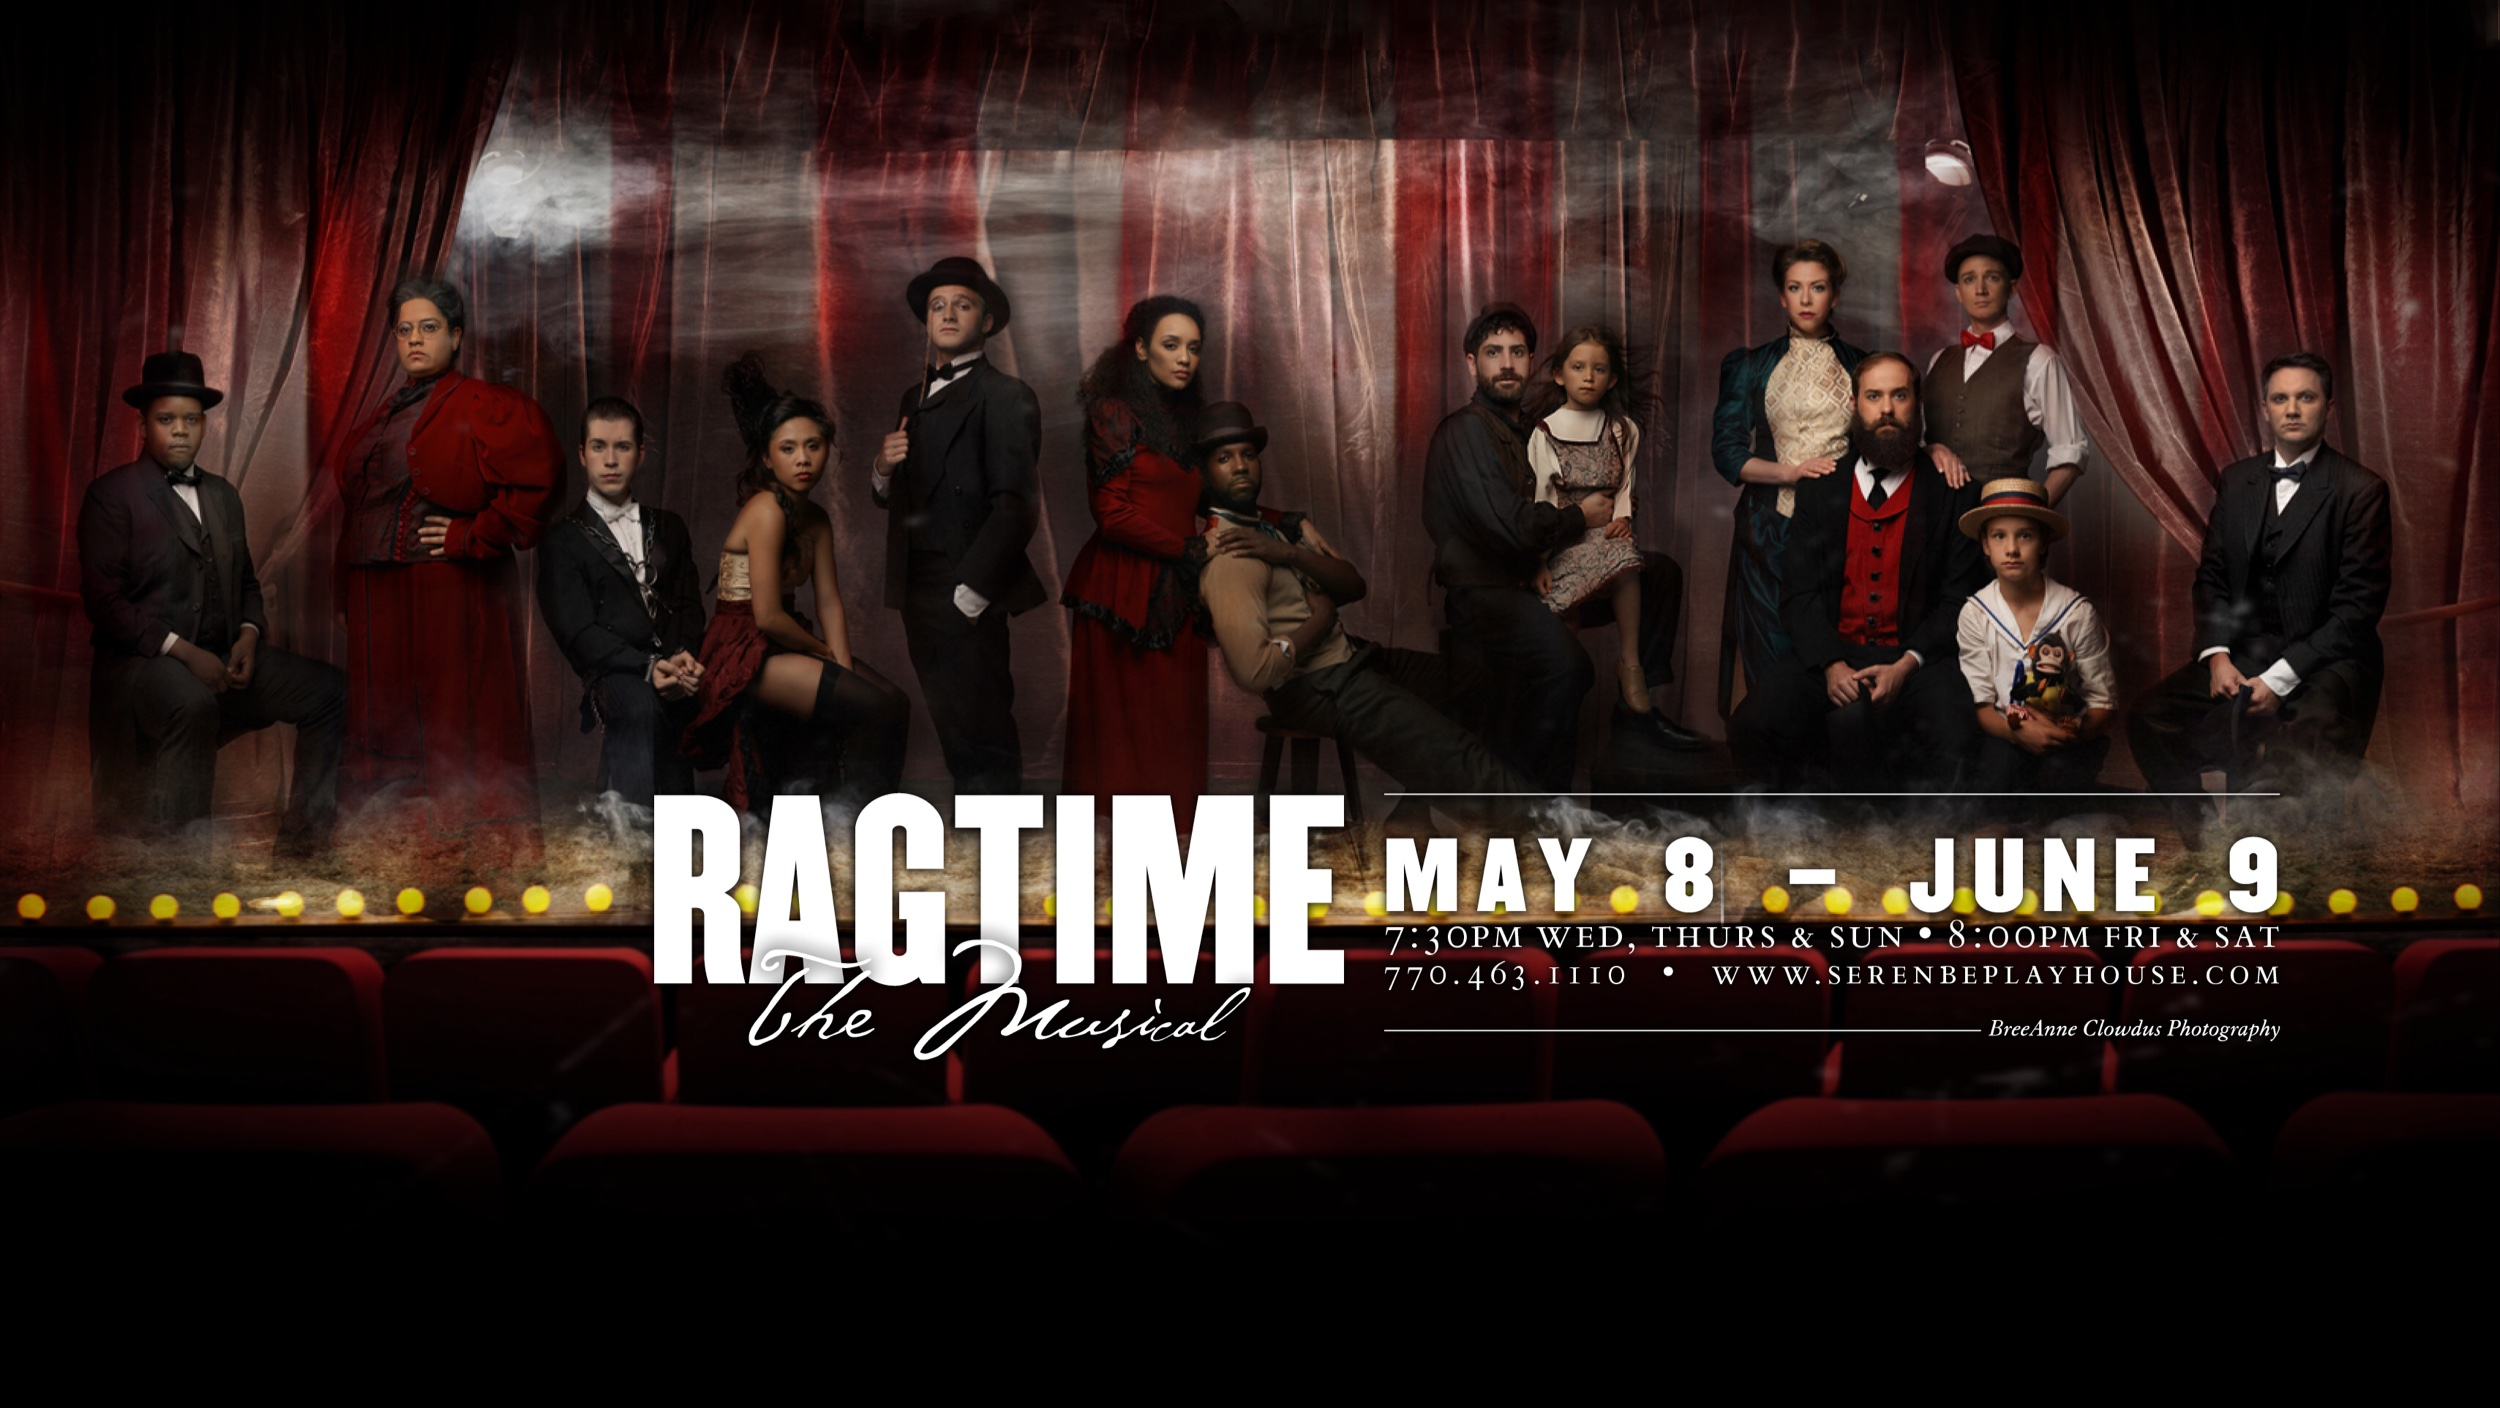 19_sp_ragtime_fbcover_cast_1640x924_v2 personal.jpeg